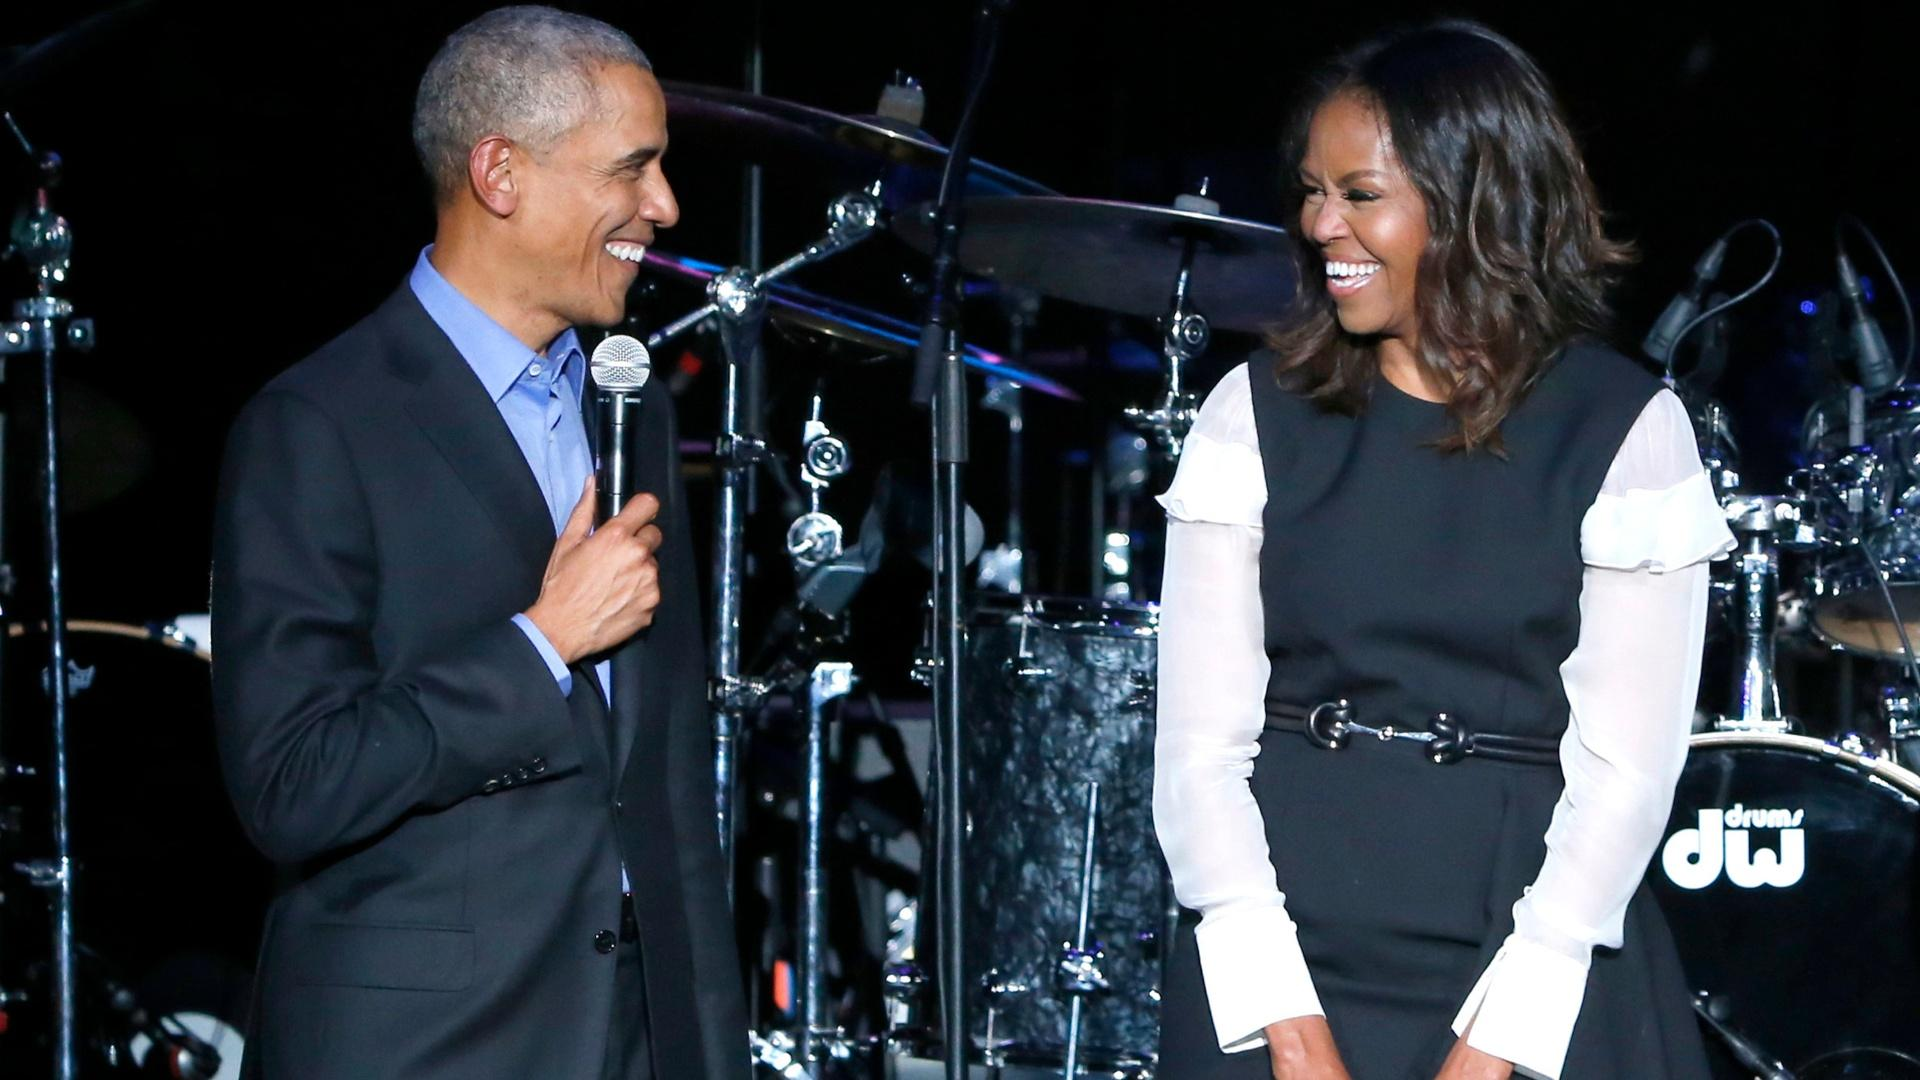 Former President Barack Obama, left, and former first lady Michelle Obama appear on stage during a community concert at the Obama Foundation Summit on Nov. 1, 2017, in Chicago. (AP Photo / Charles Rex Arbogast, file)